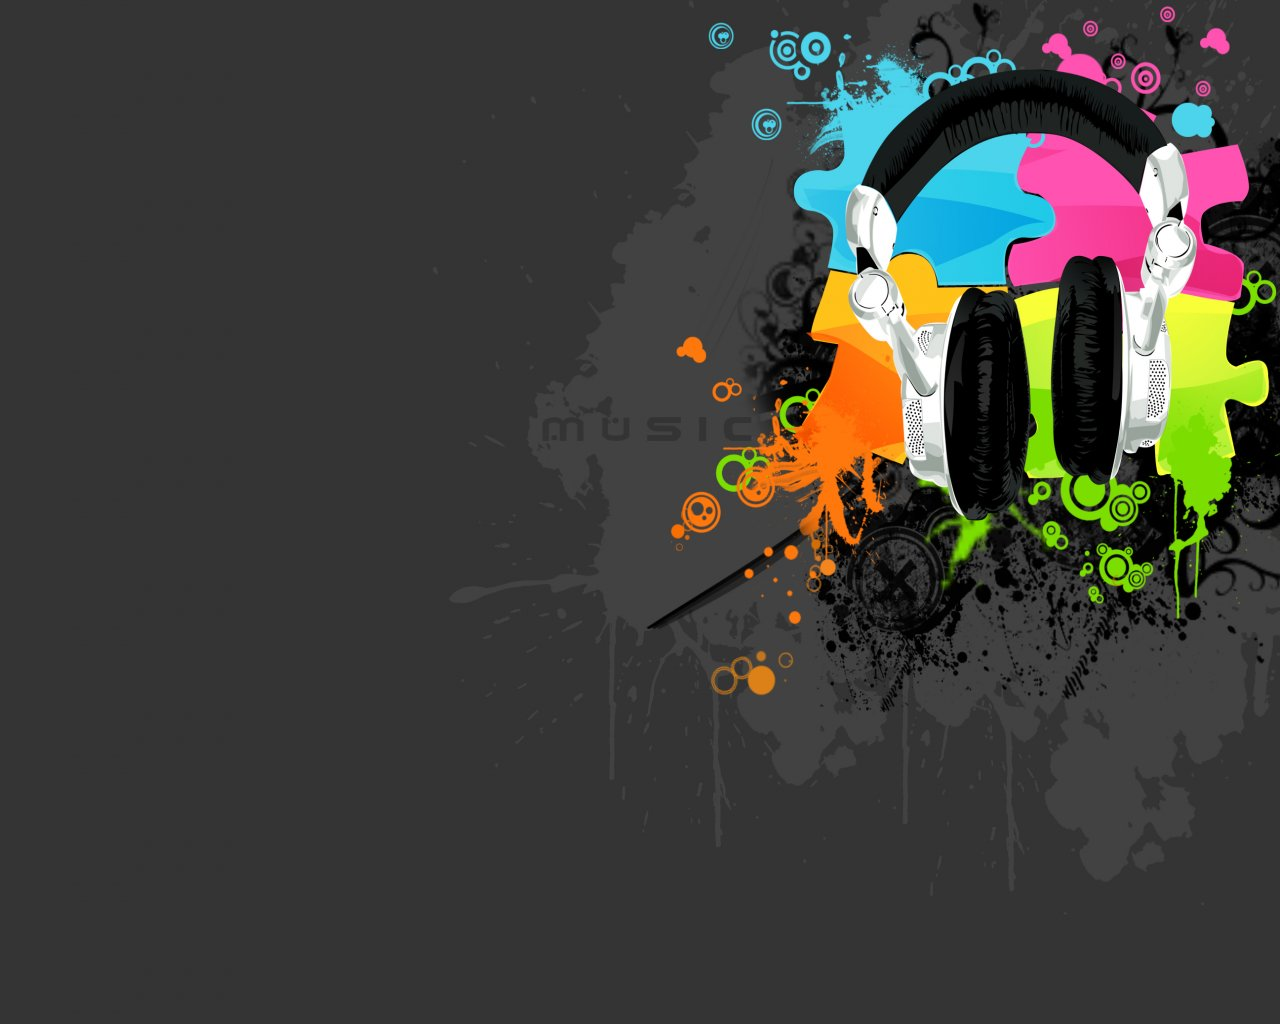 Beautiful   Wallpaper Home Screen Music - cool+music+background+wallpapers++3  Perfect Image Reference_436878.jpg